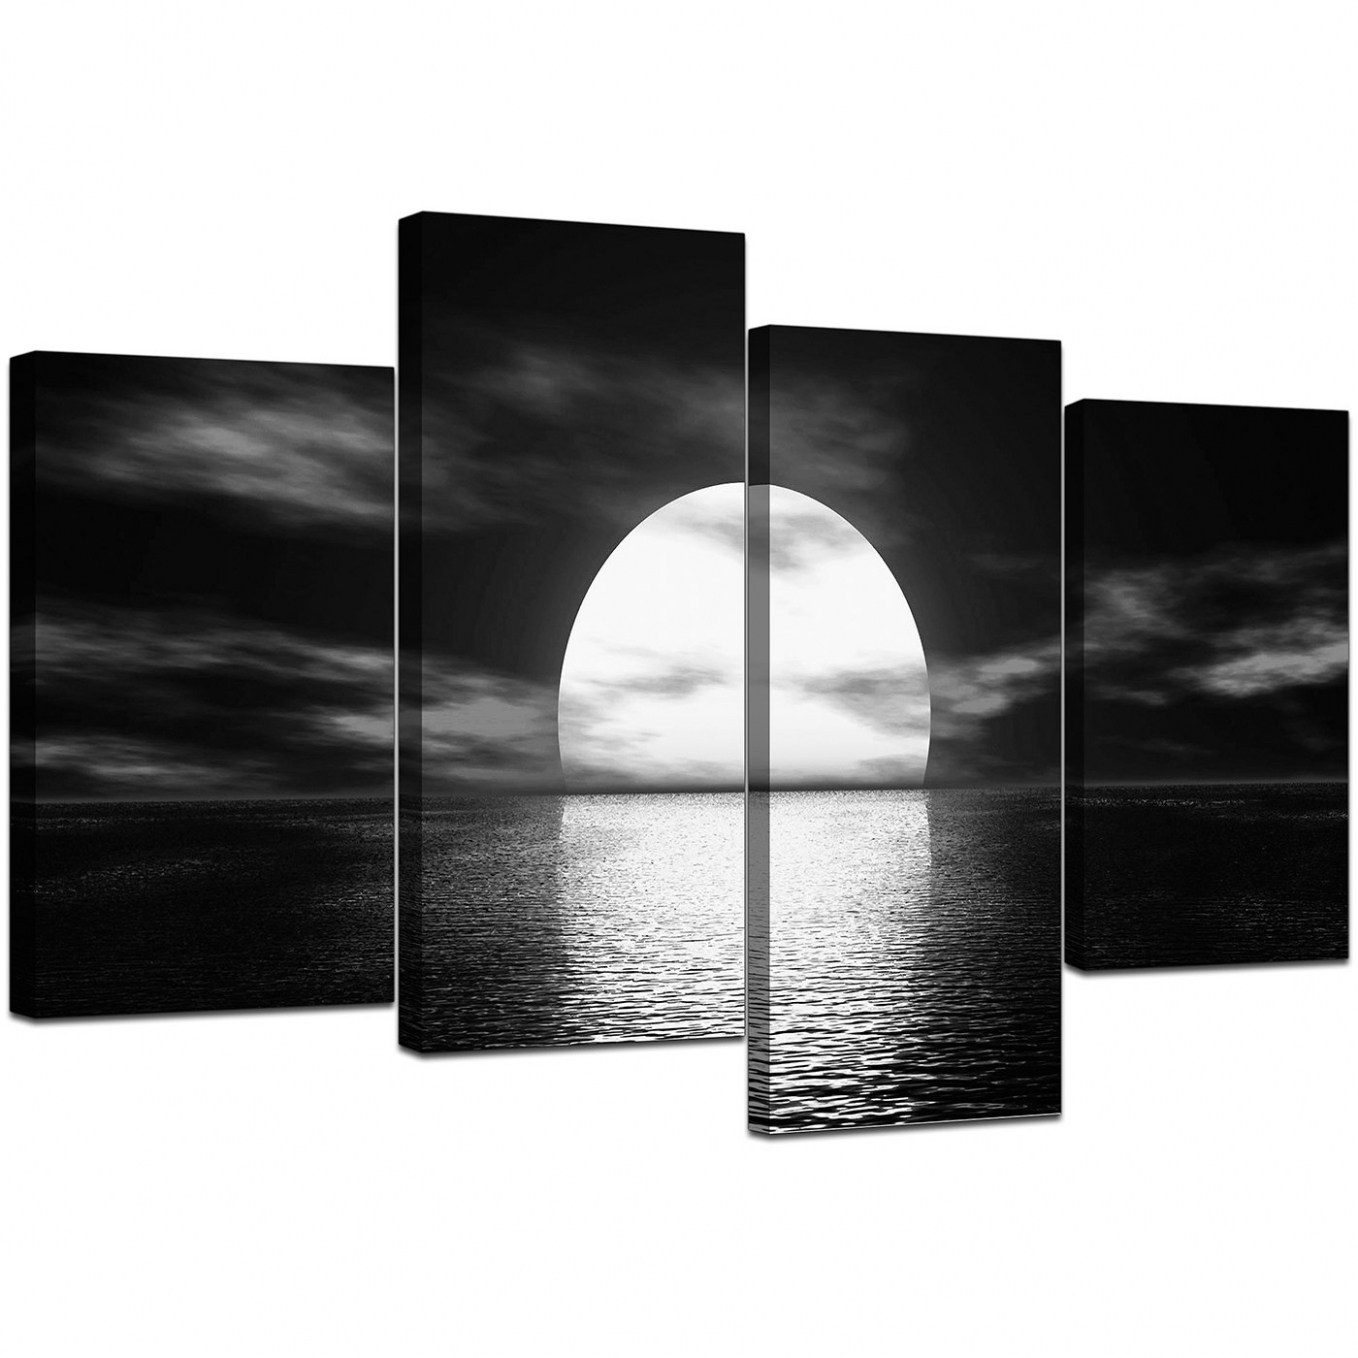 10 Best Ideas Of Black And White Large Canvas Wall Art Within Most Current Photography Canvas Wall Art (View 1 of 15)